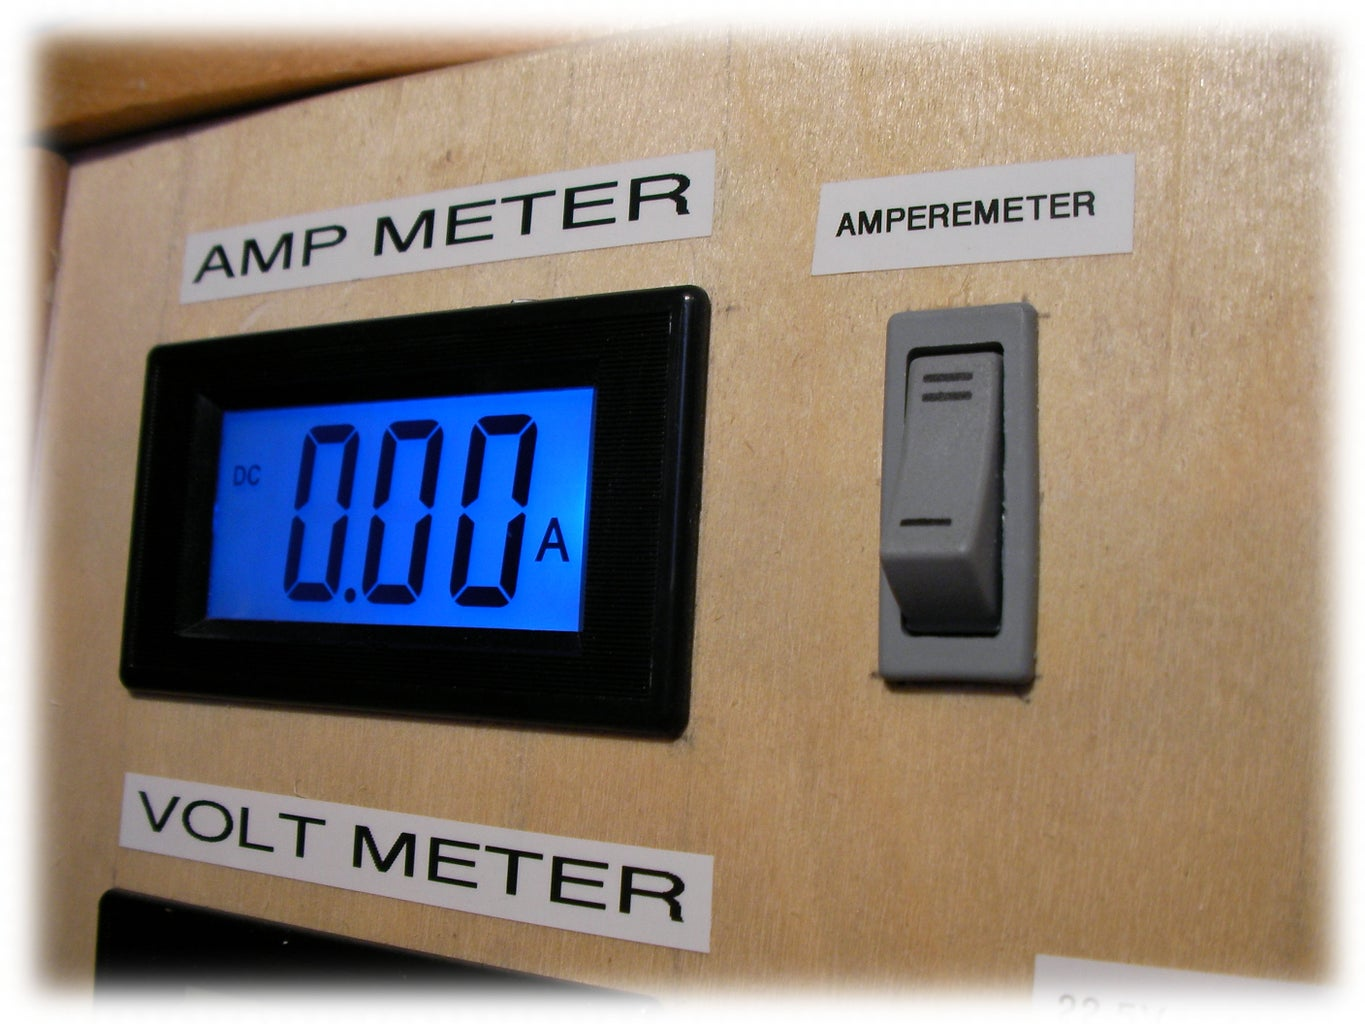 Fitting the Voltmeter and Ammeter